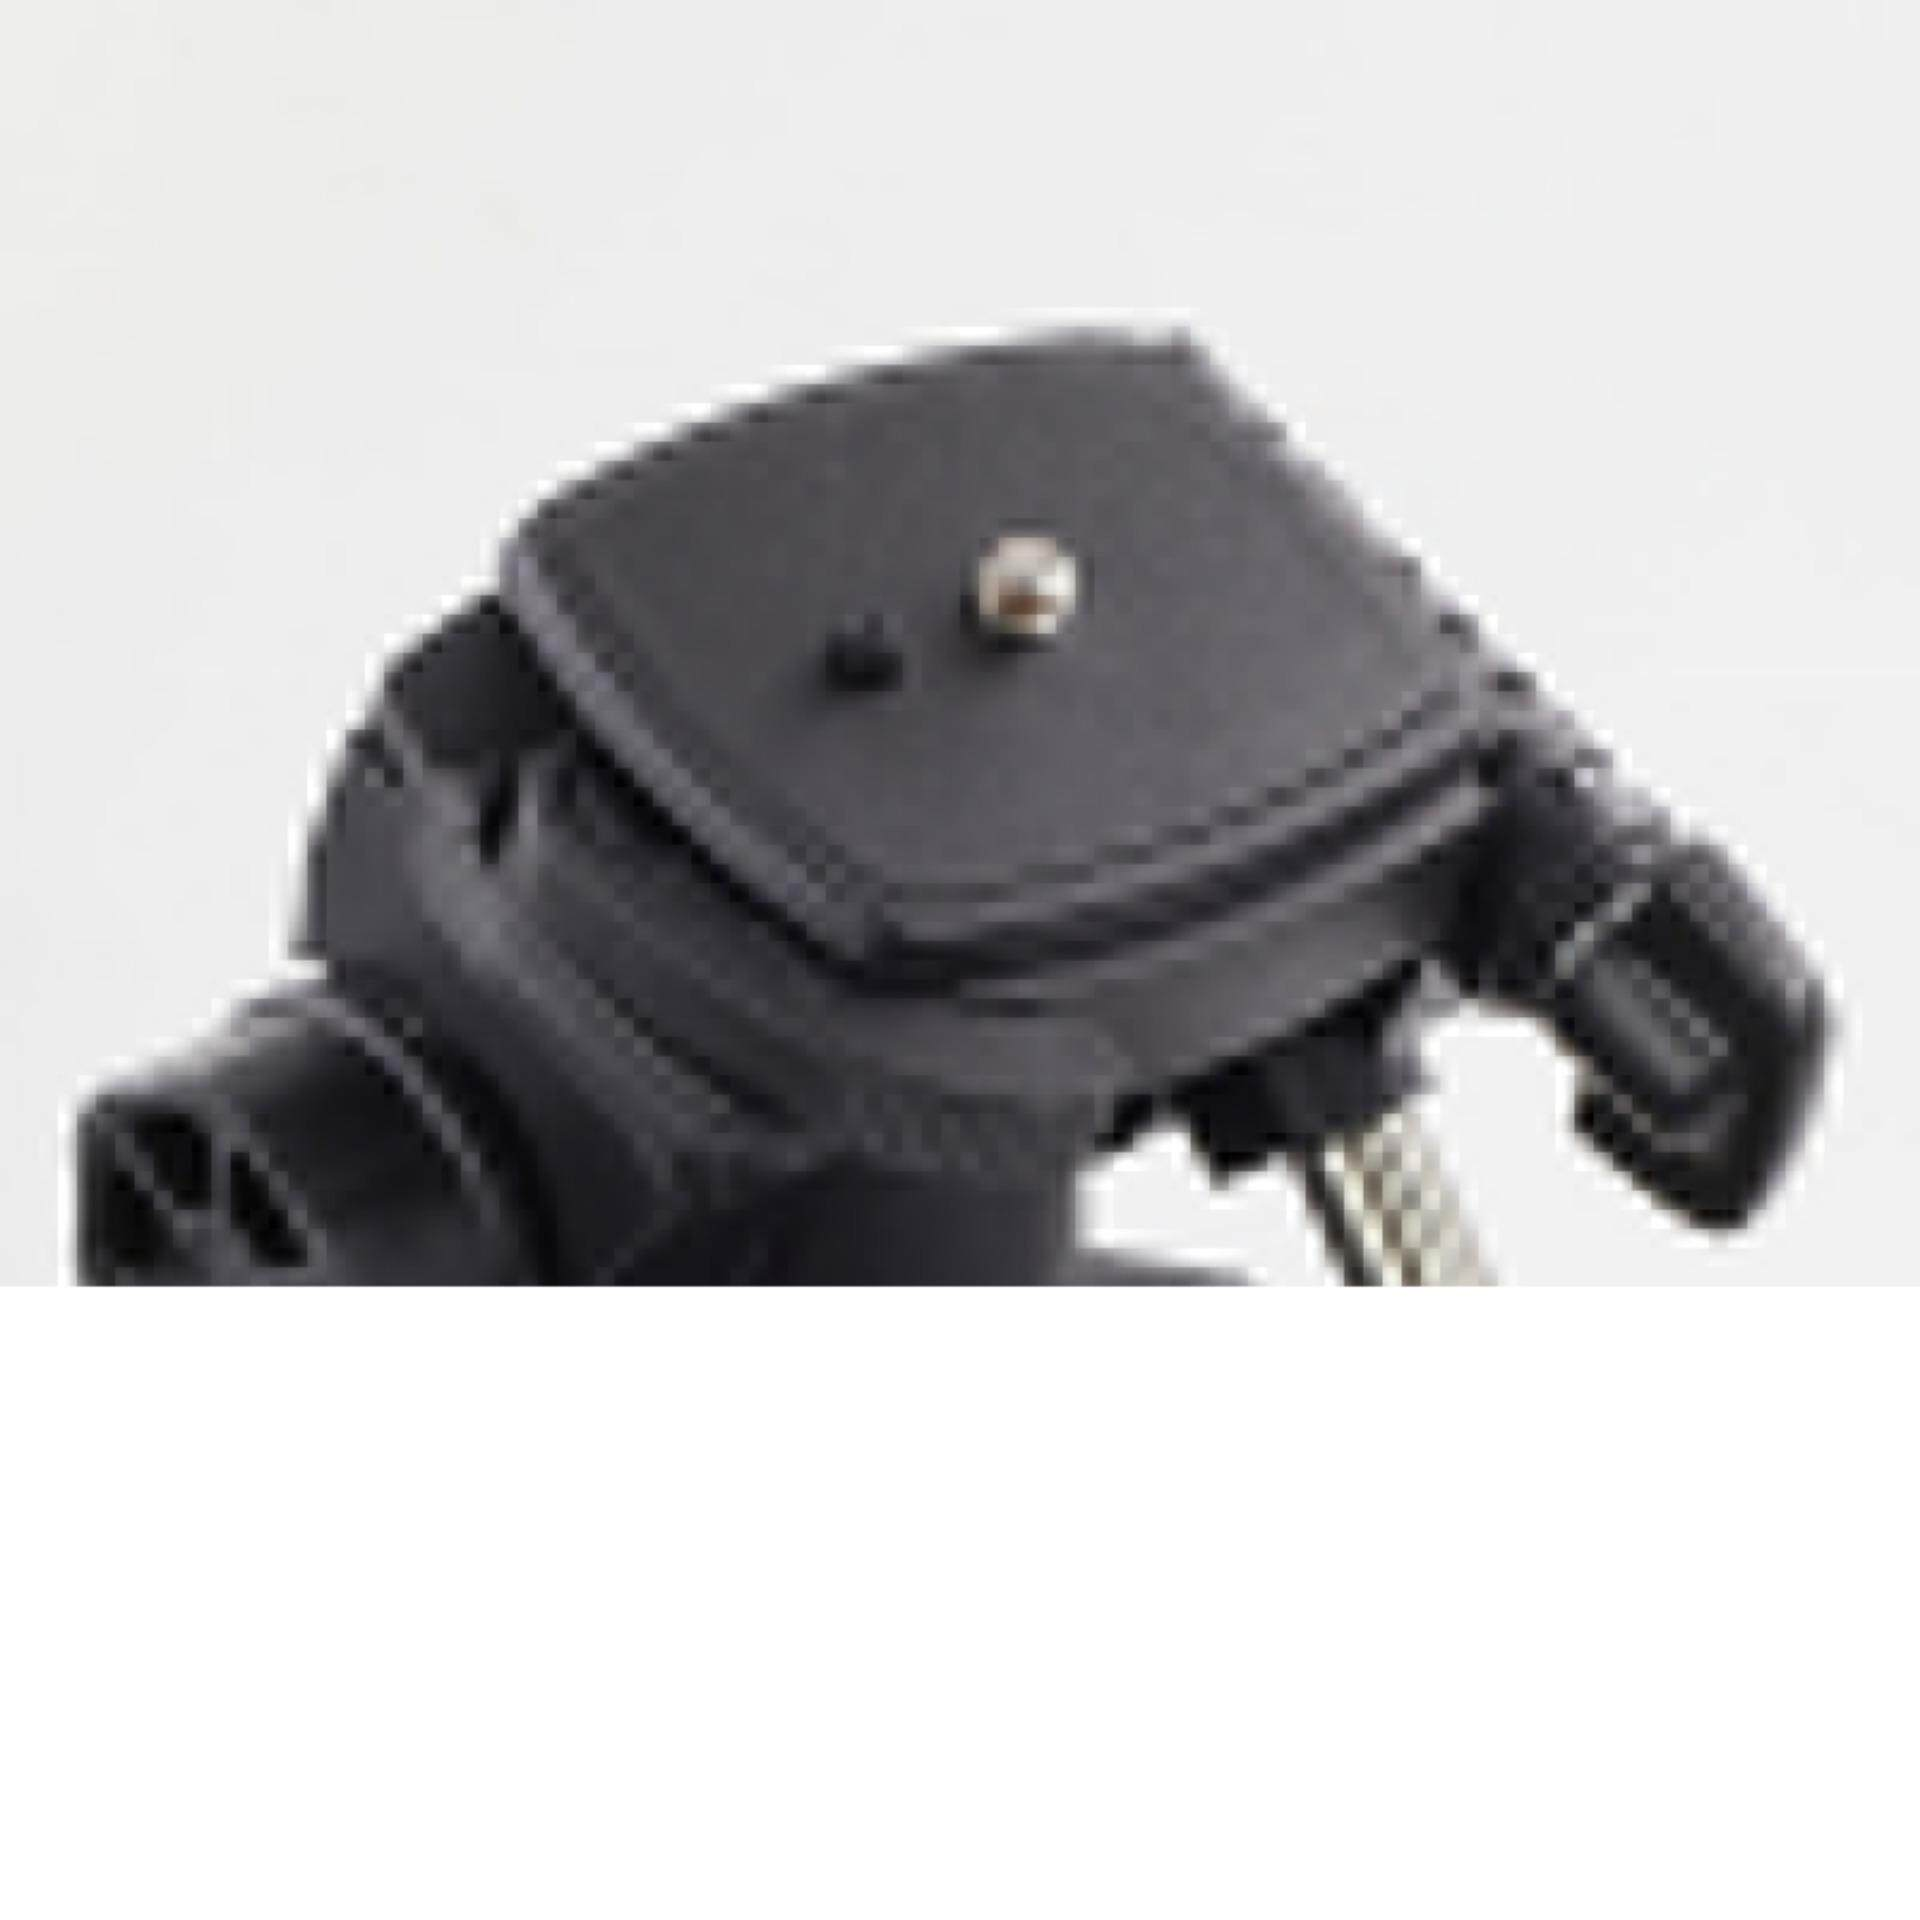 ... Quick Release Plate Screw Adapter Tripod Mount Head For Sony DSLR SLR Camera - 4